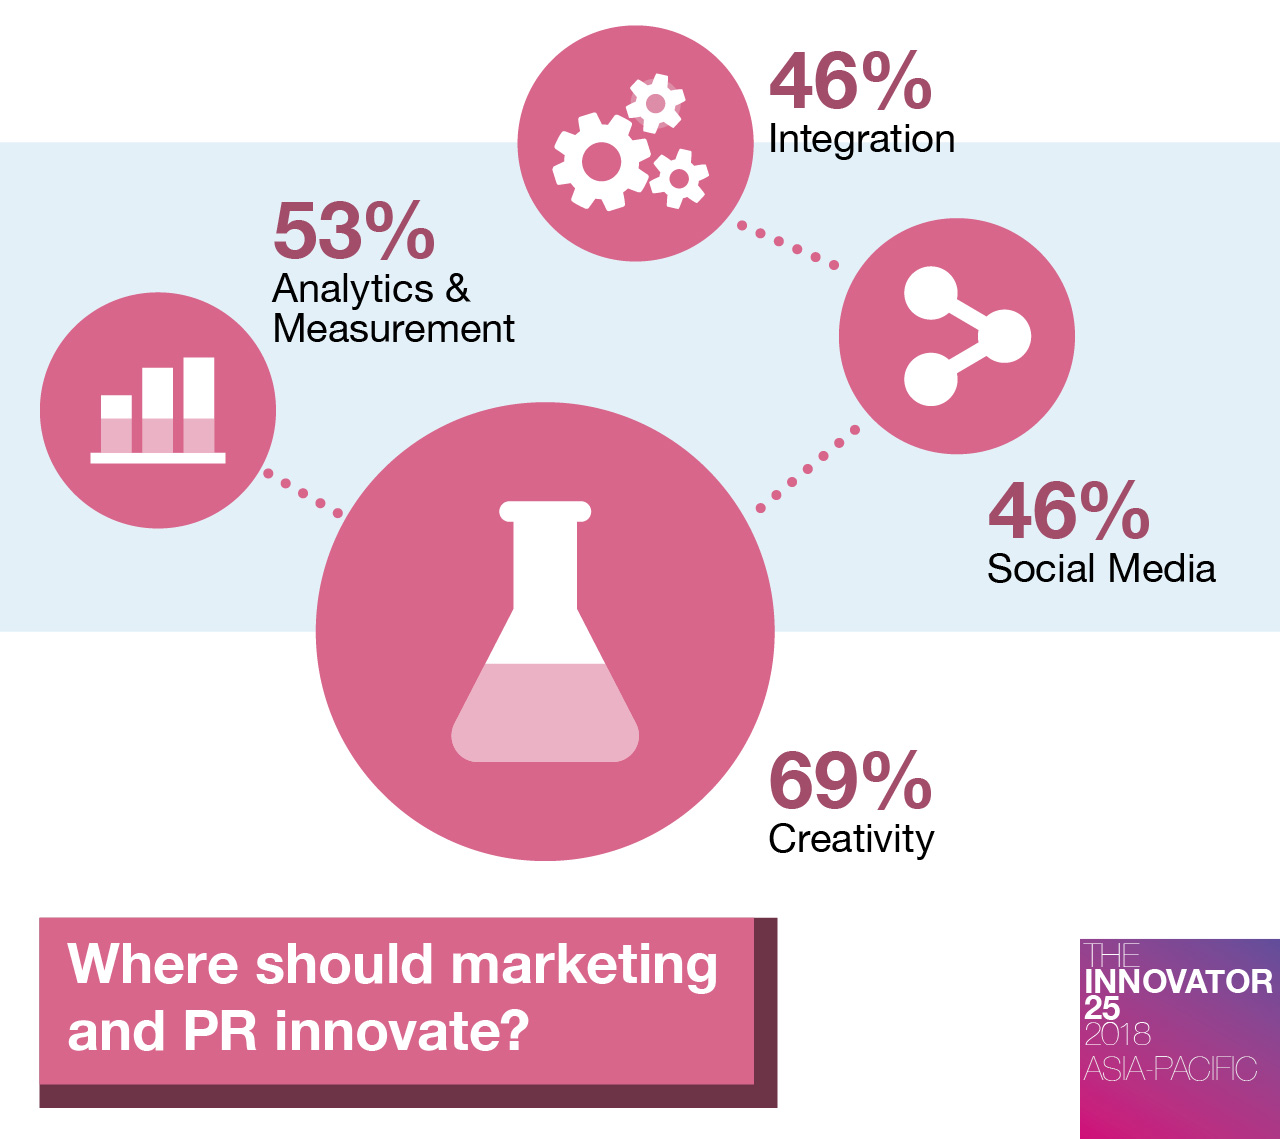 innovator-25-ap-where-should-marketing-and-PR-innovate